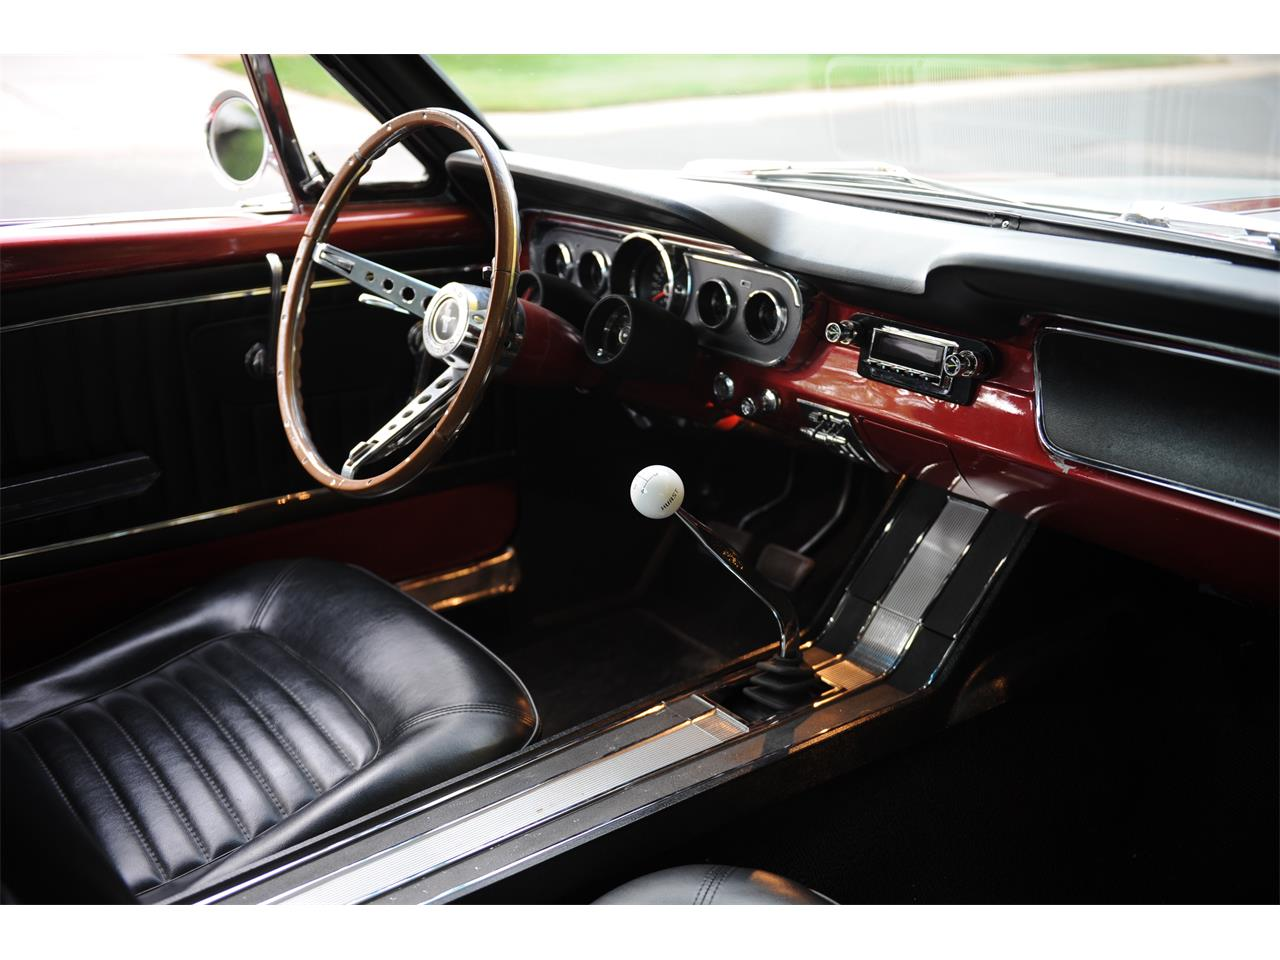 Large Picture of Classic 1965 Ford Mustang - $48,500.00 Offered by a Private Seller - OO0C